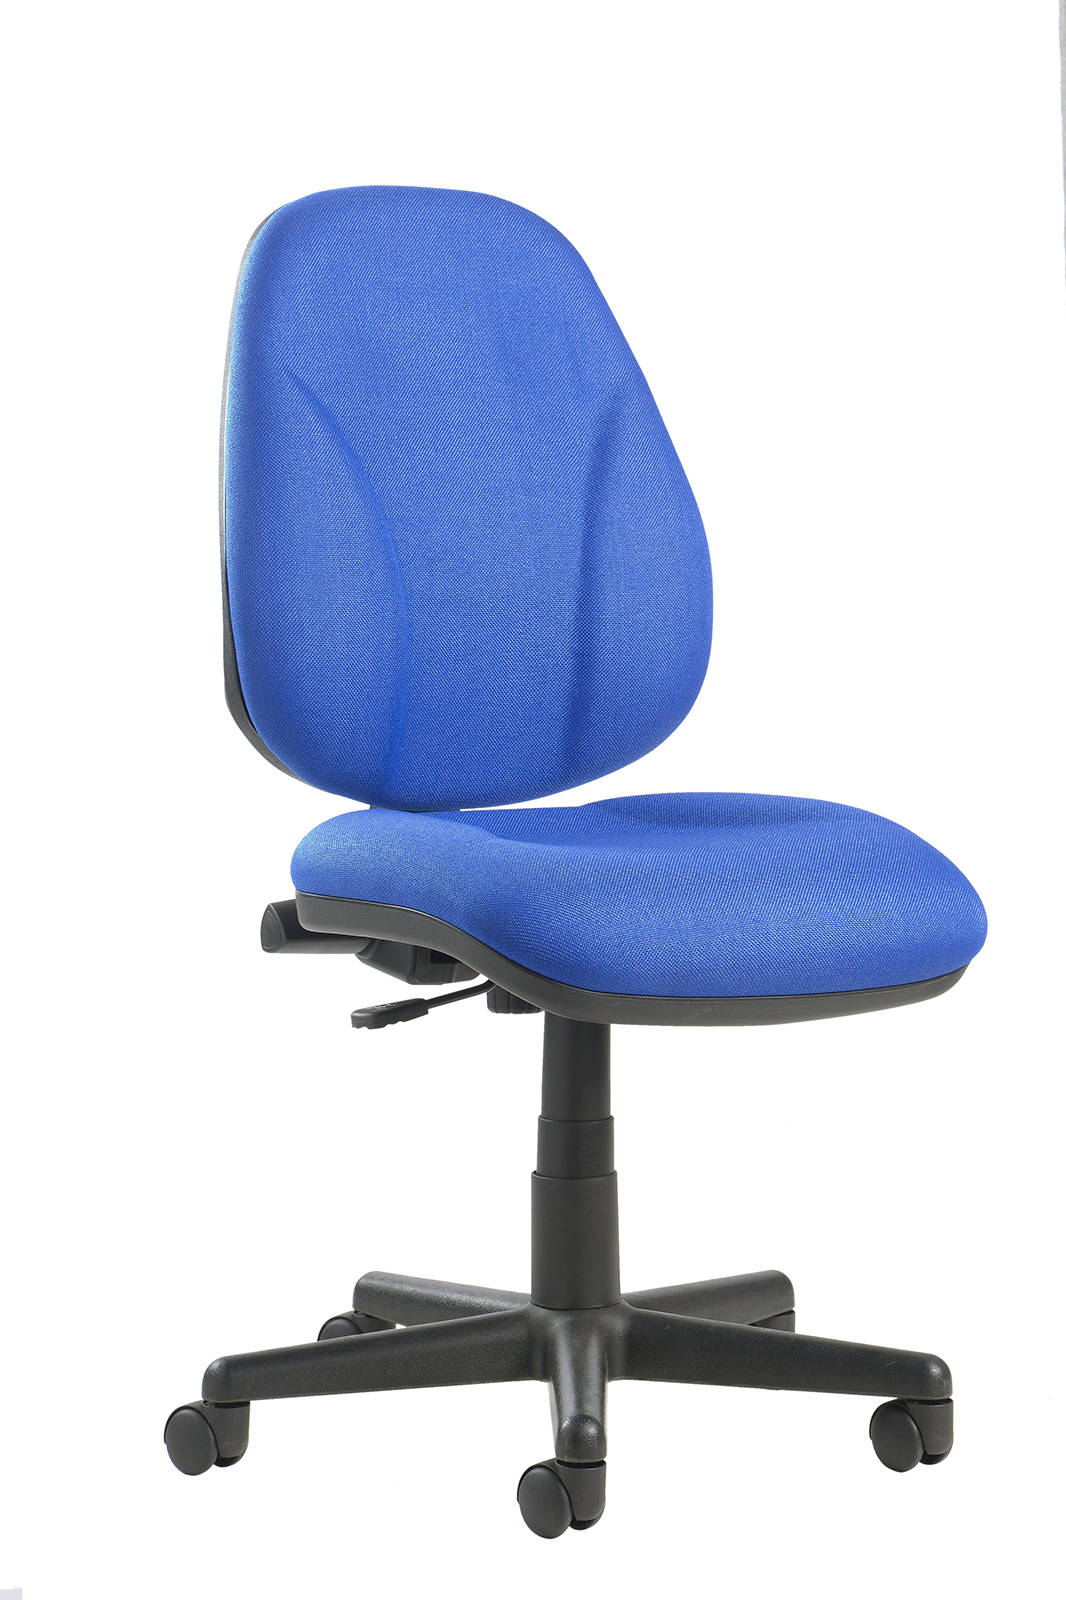 Bilbao fabric operators chair with lumbar support and no arms - blue